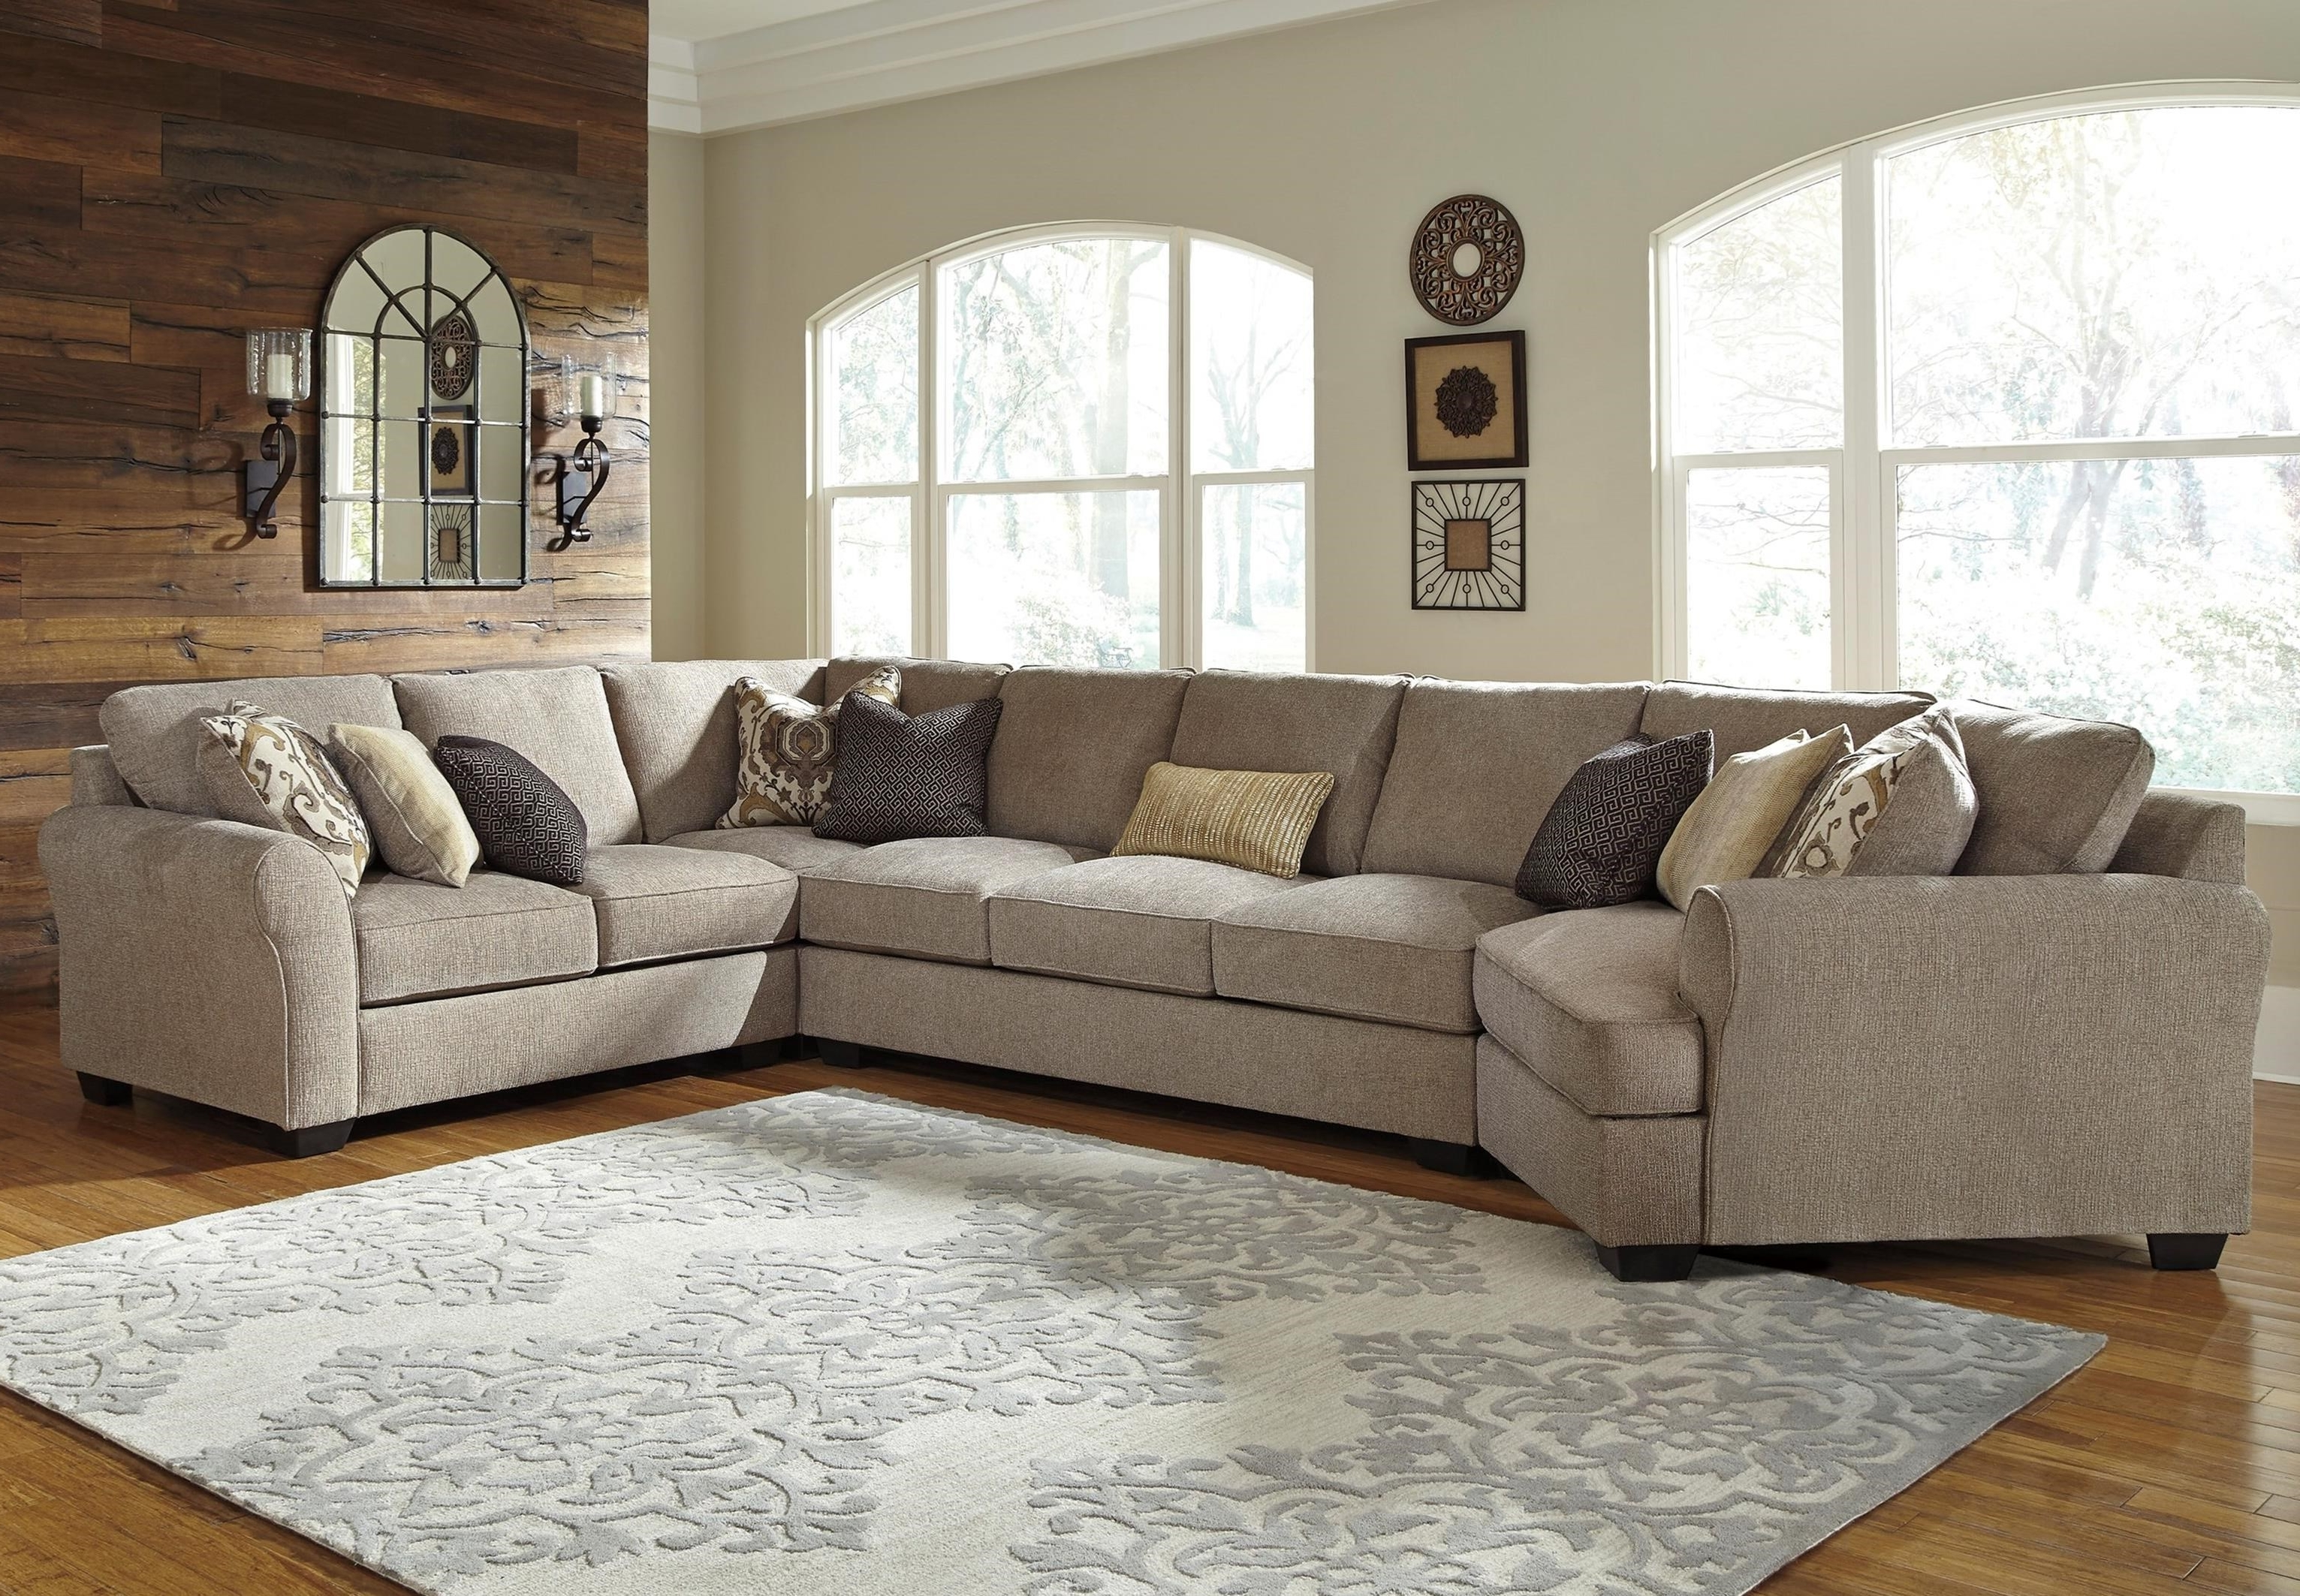 Preferred Benchcraft Pantomine 4 Piece Sectional With Left Cuddler & Armless In Sectional Sofas With Cuddler (View 11 of 20)